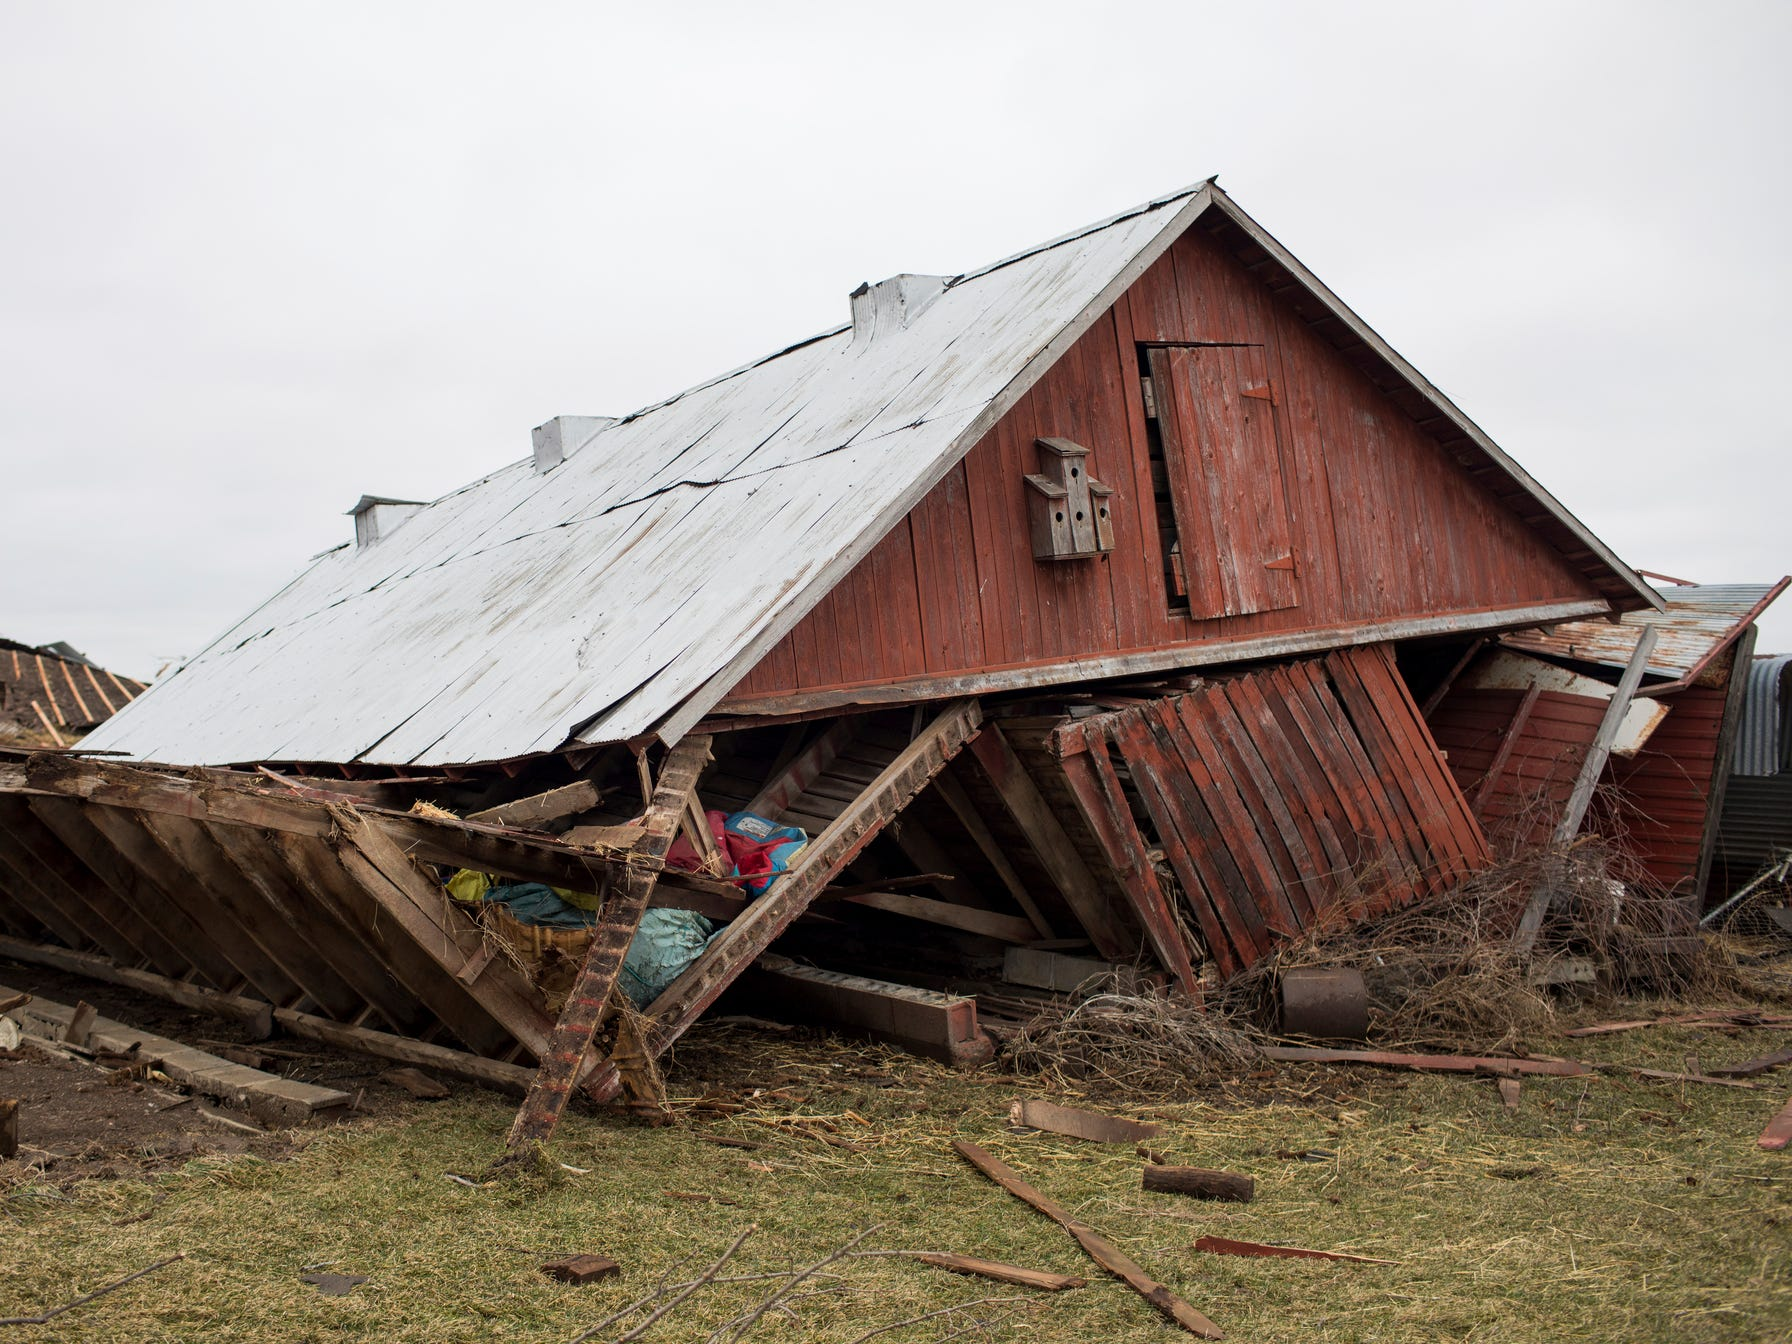 Debris lies on the ground near a barn after a tornado Friday in Vernon, Michigan. Authorities say a tornado swept through mid-Michigan, damaging homes and knocking out power to thousands.